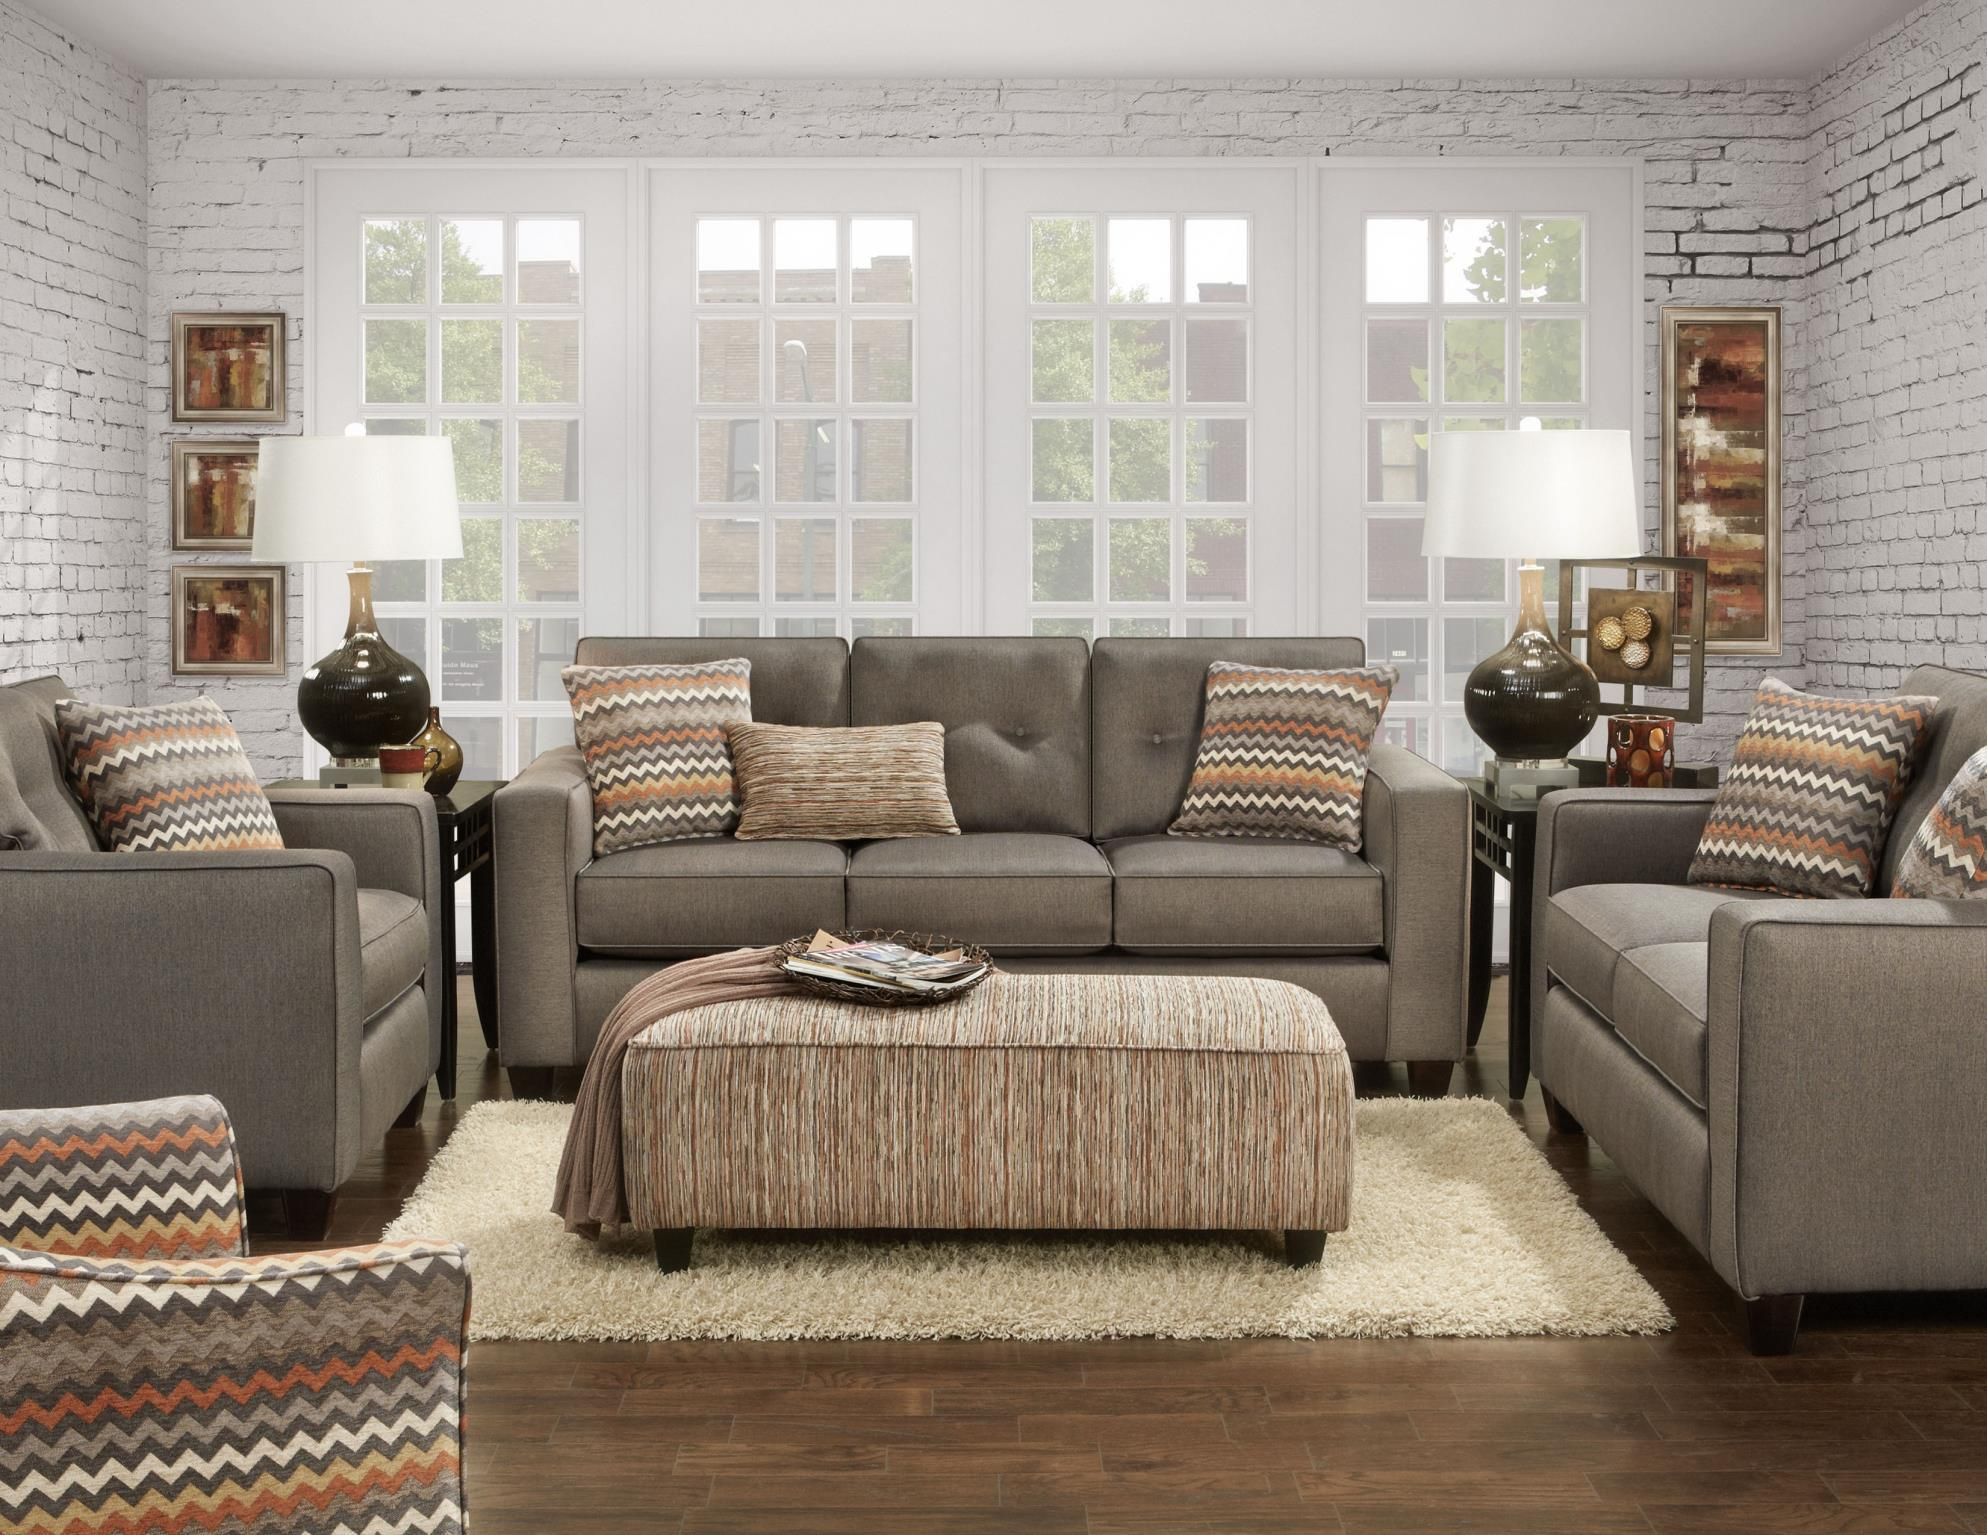 Haley Jordan Verano Stationary Living Room Group - Item Number: 3560B Living Room Group 2